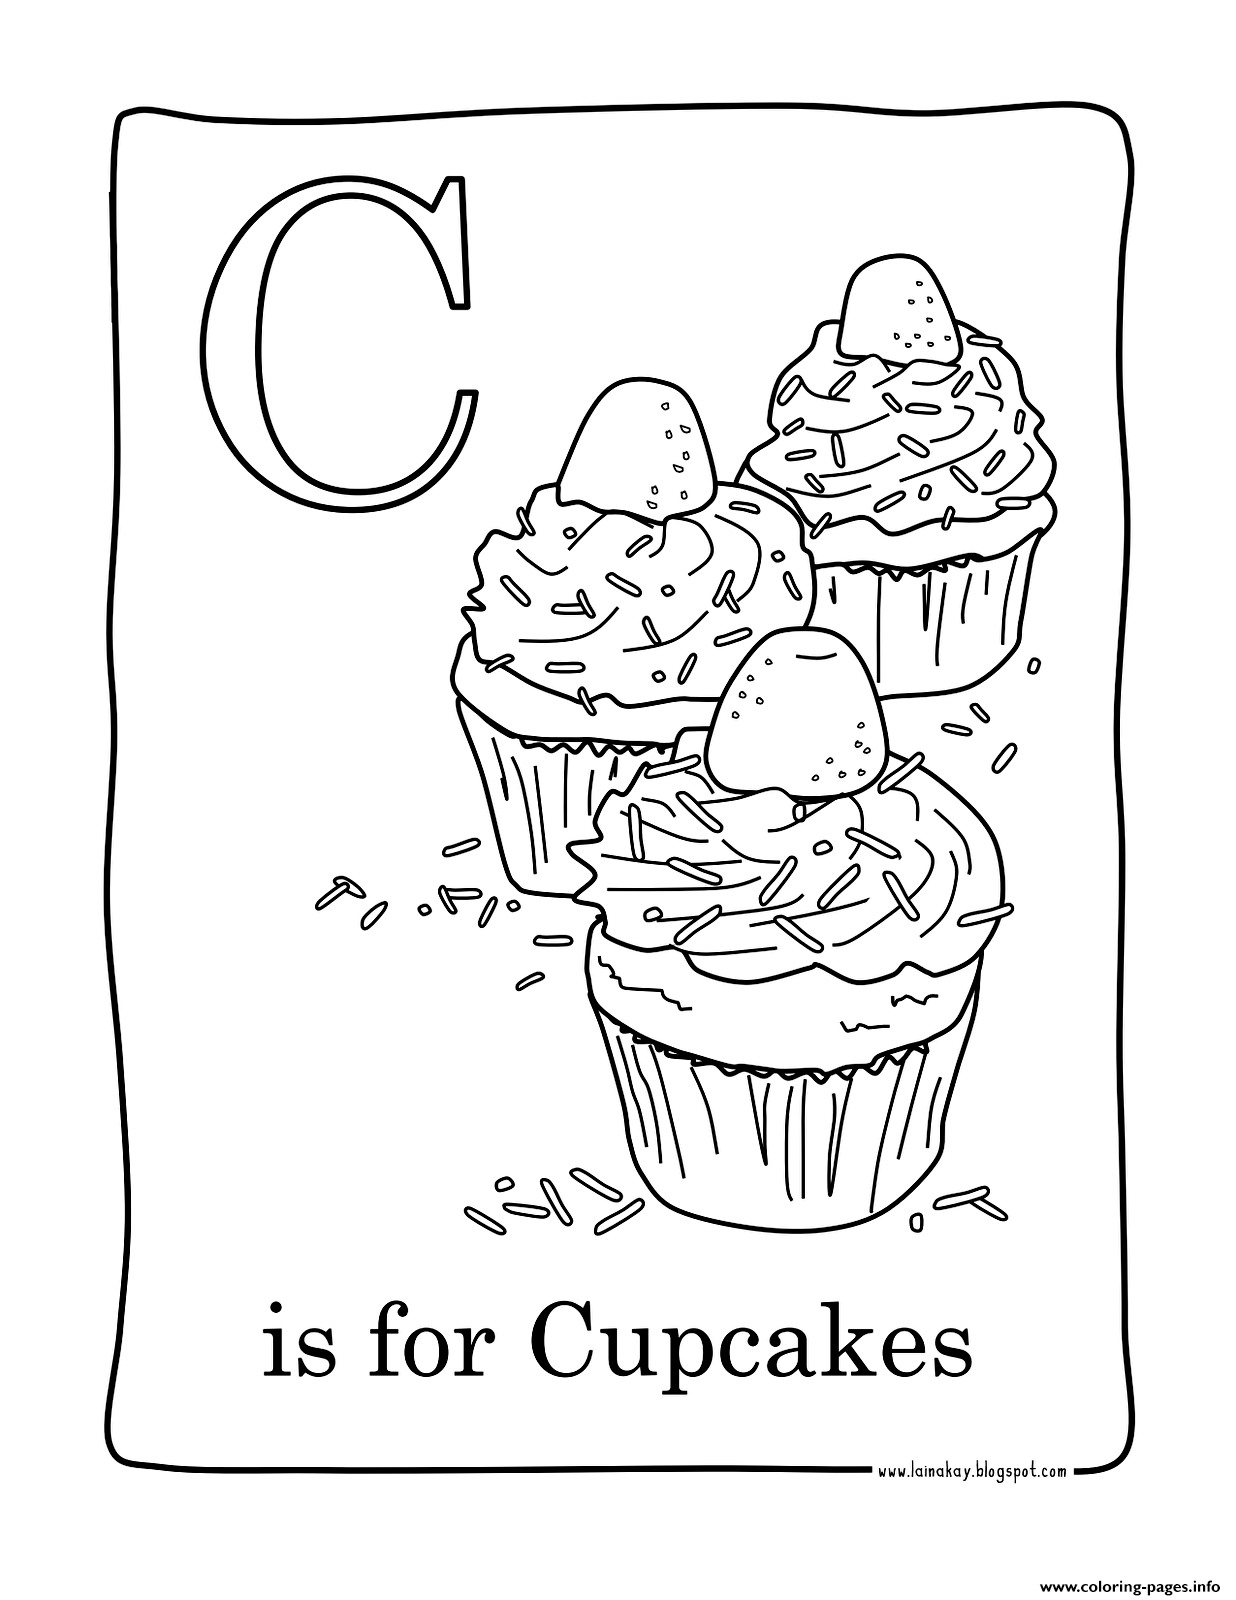 elsa coloring pages images cupcake - photo#6